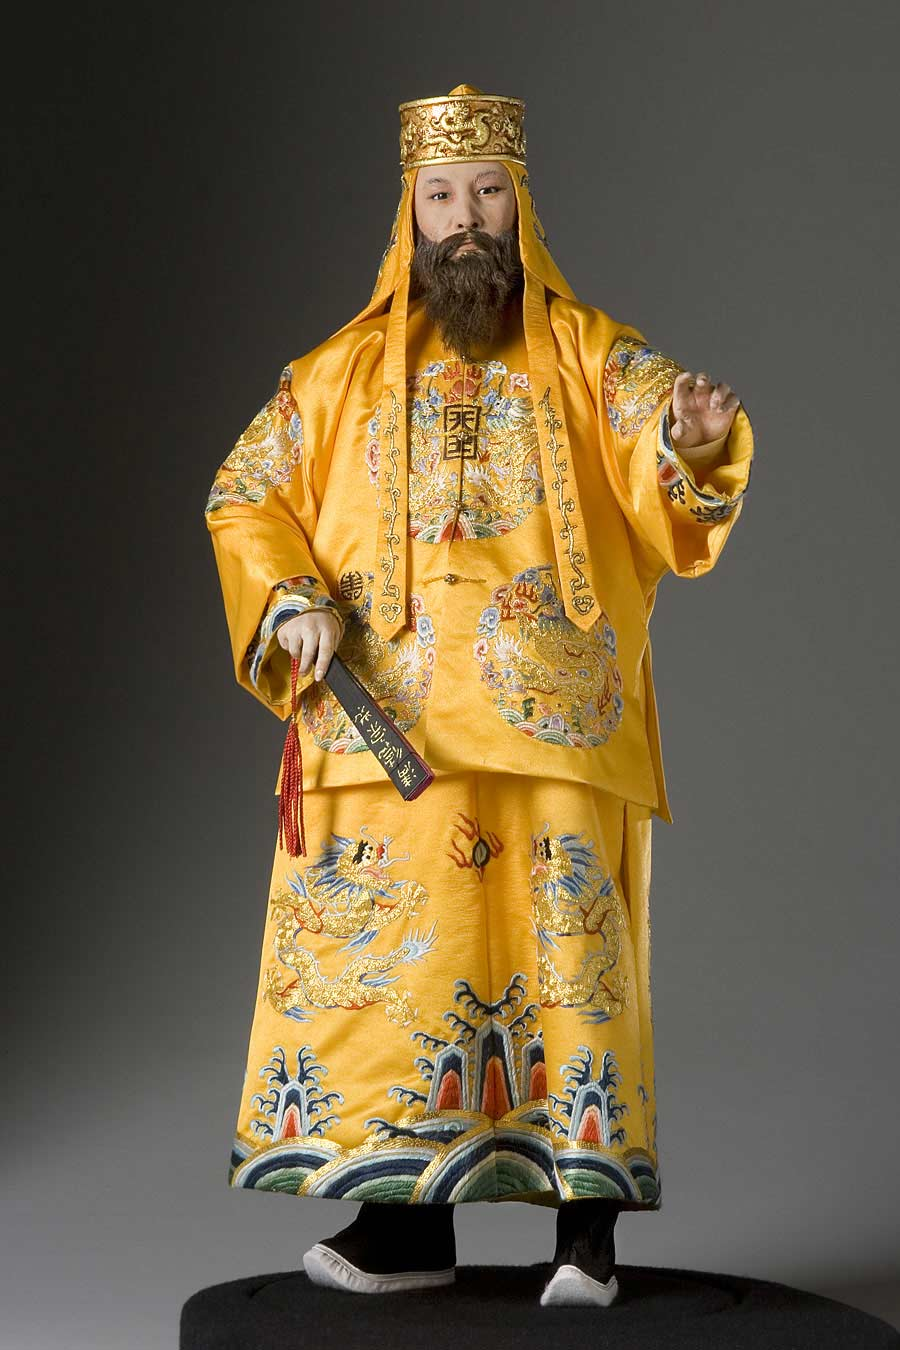 Full length color image of Hung Hsiu Chuan (Taiping Emperor) aka. Hong Xiuquan, by George Stuart.